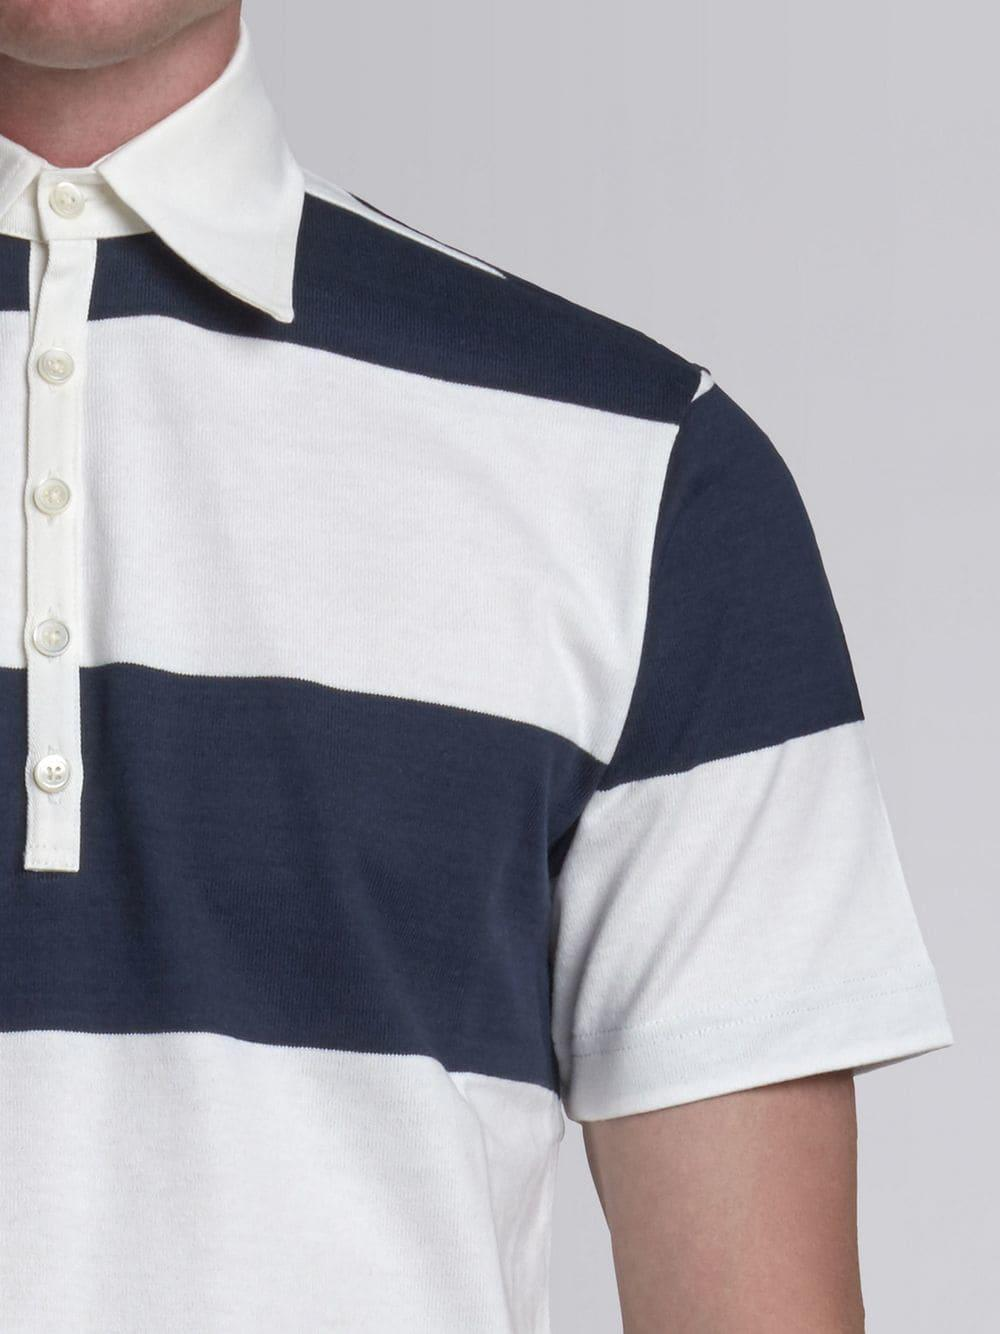 Thom Browne Short Sleeve Polo With 4-bar Stripe In Blue And White Rugby Stripe